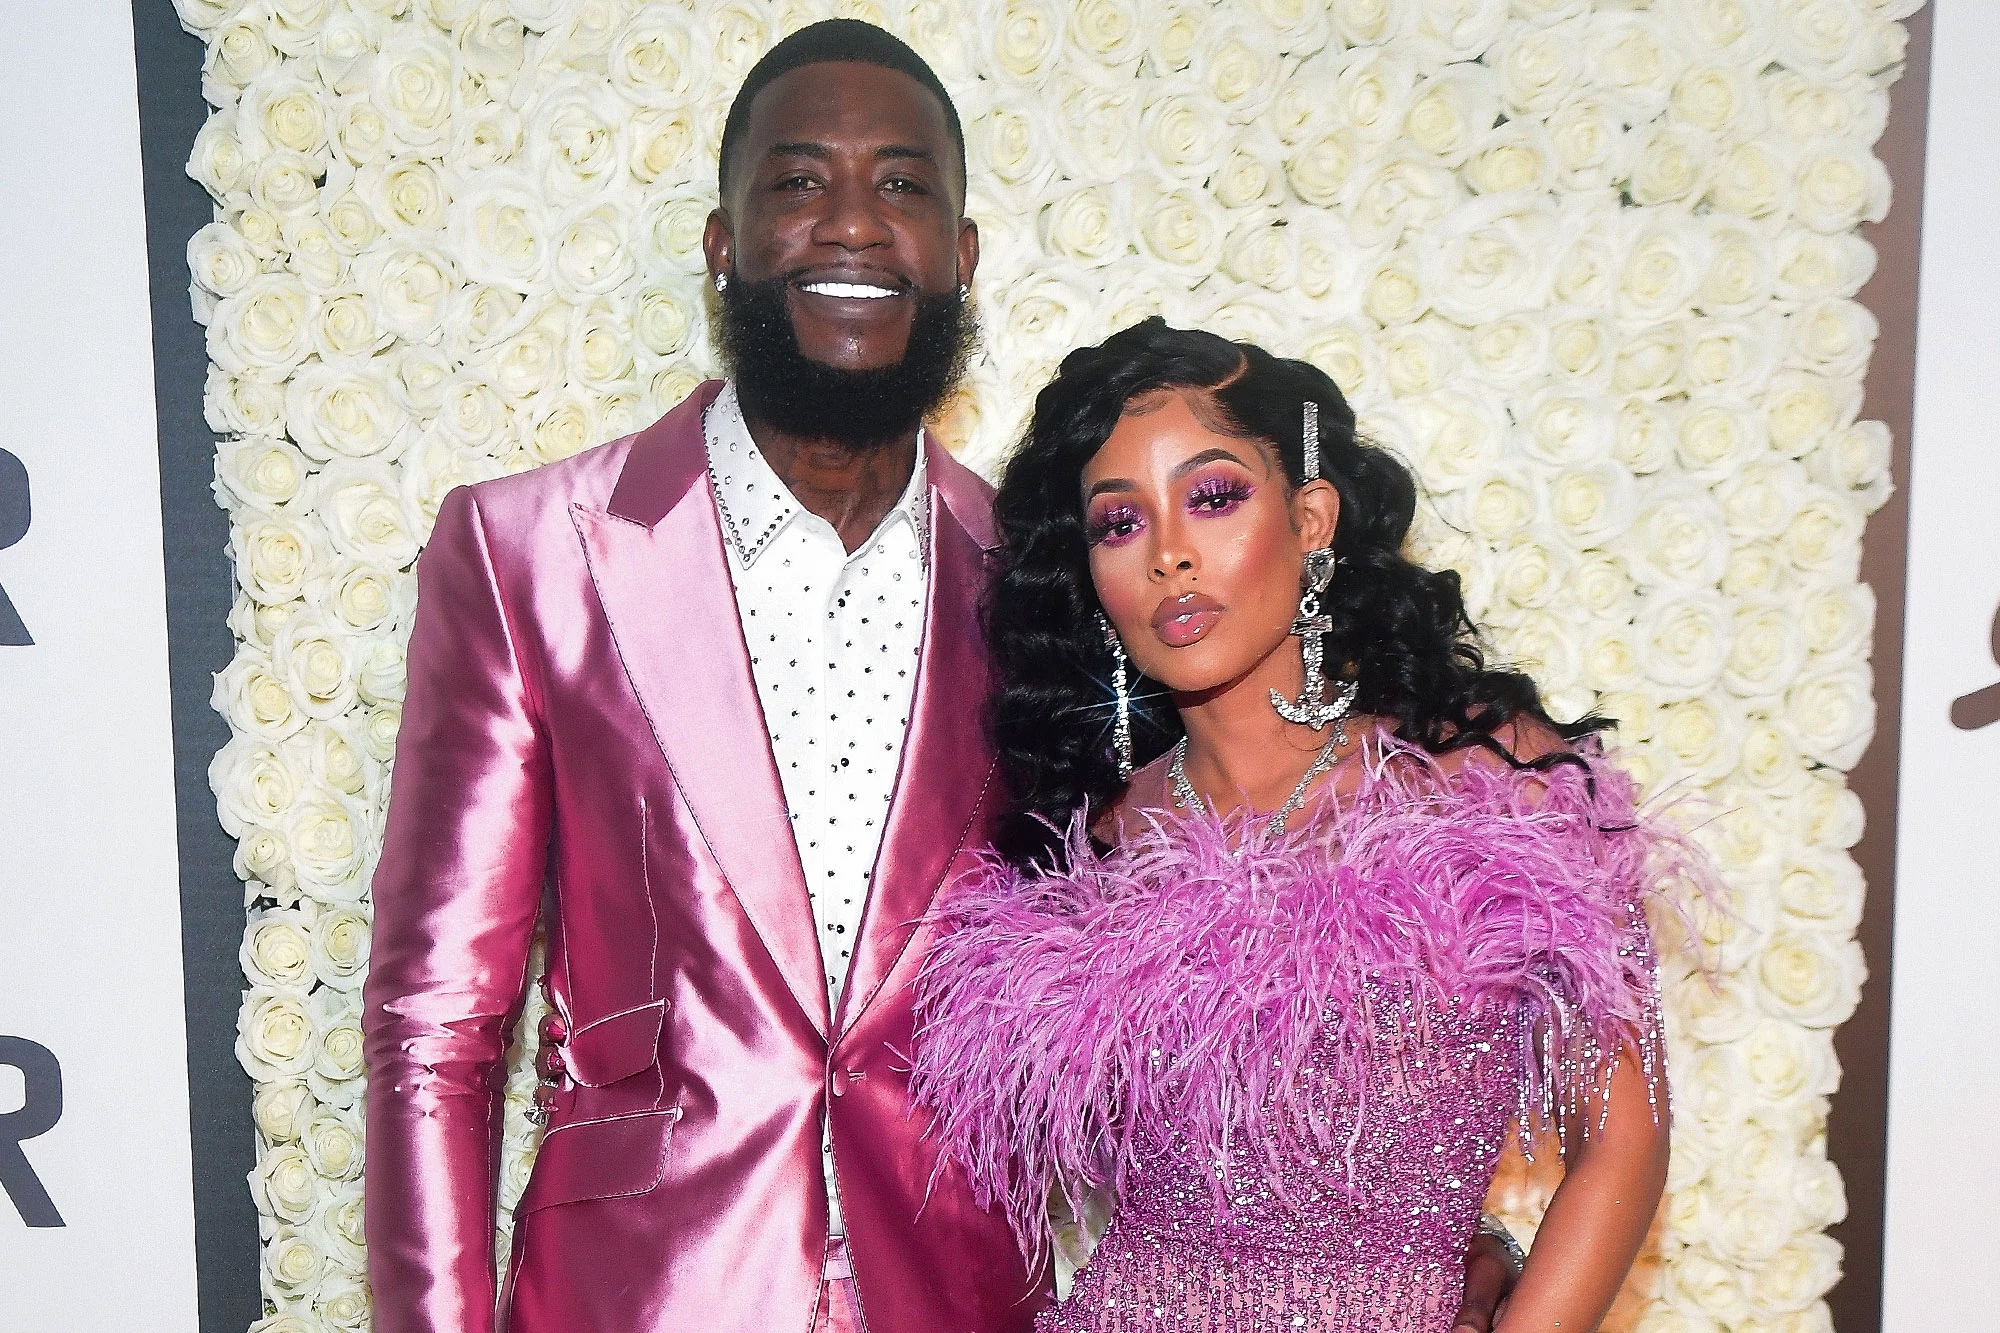 Gucci Mane Gives Wife Mini Lambo For Baby Boy